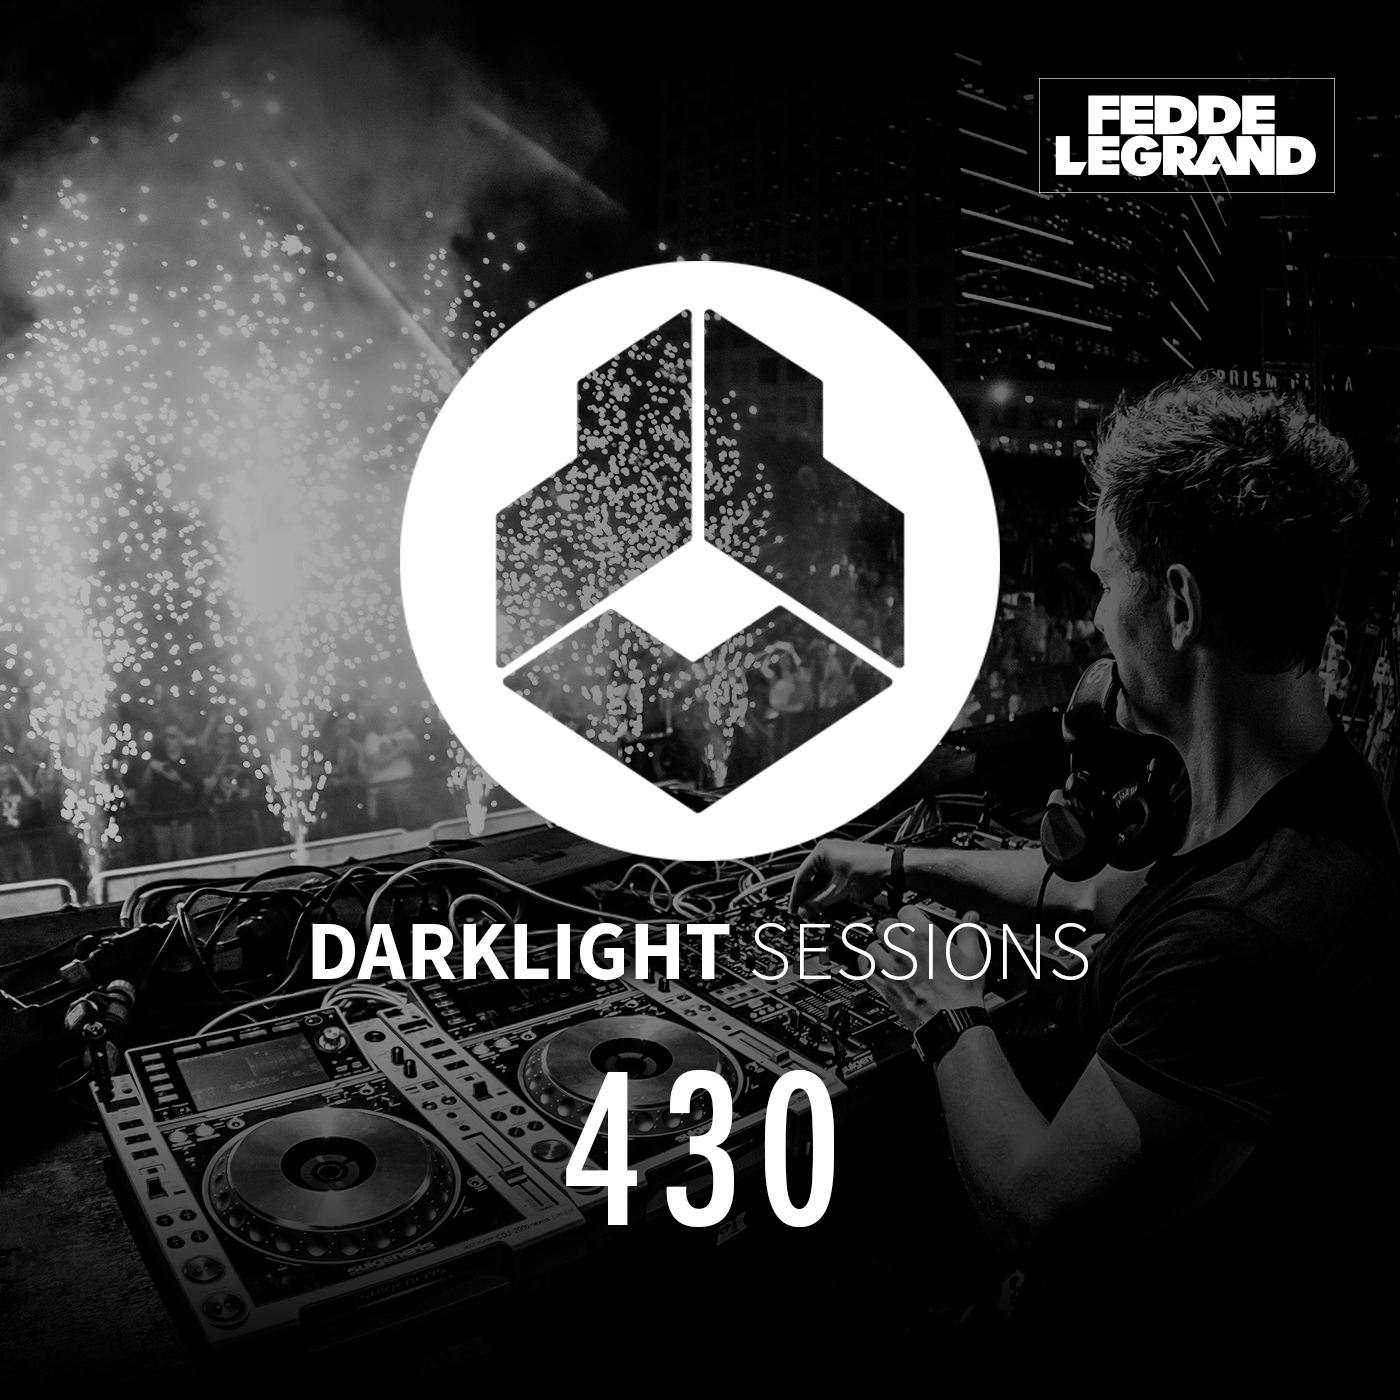 Darklight Sessions 430